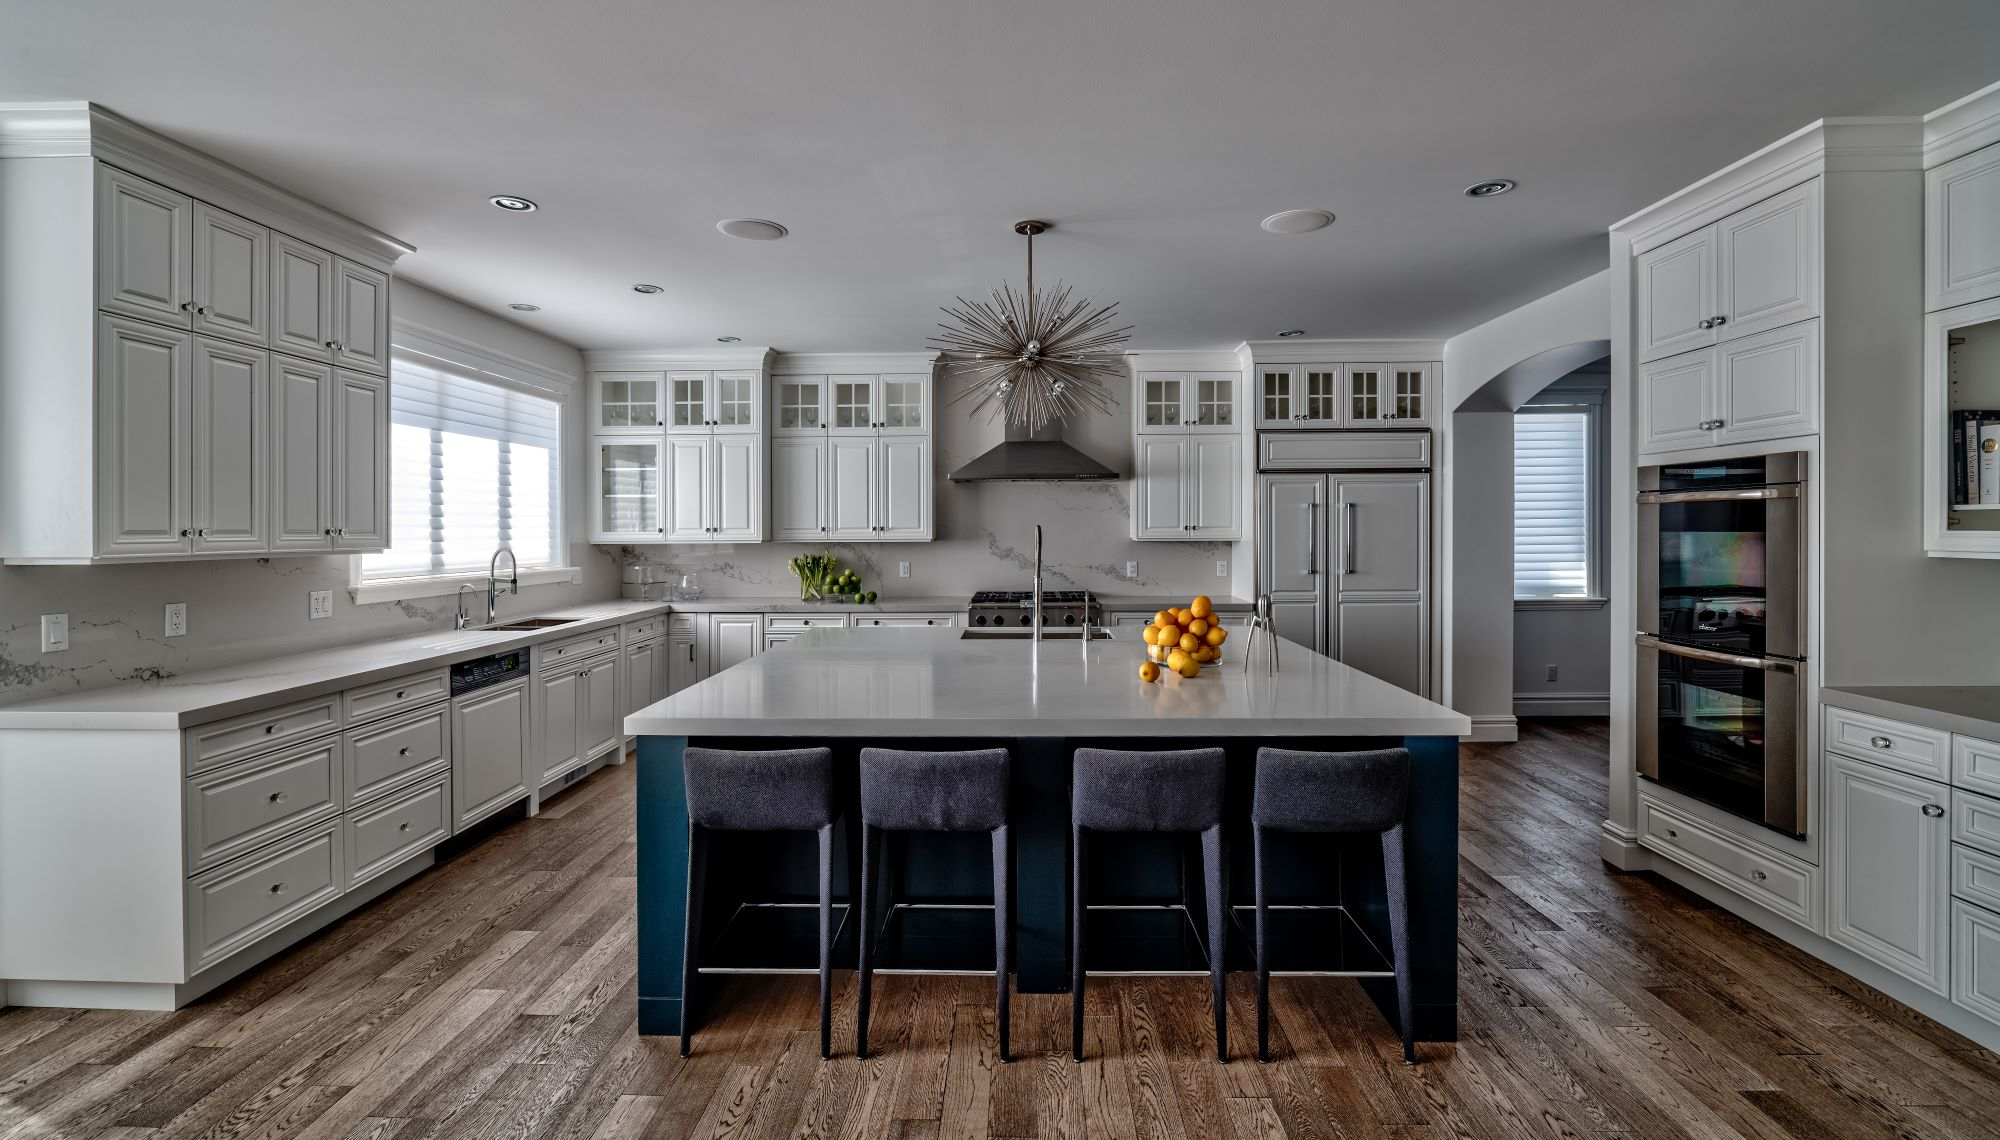 Decluttering with Hygge - Classic grey kitchen with blue accents